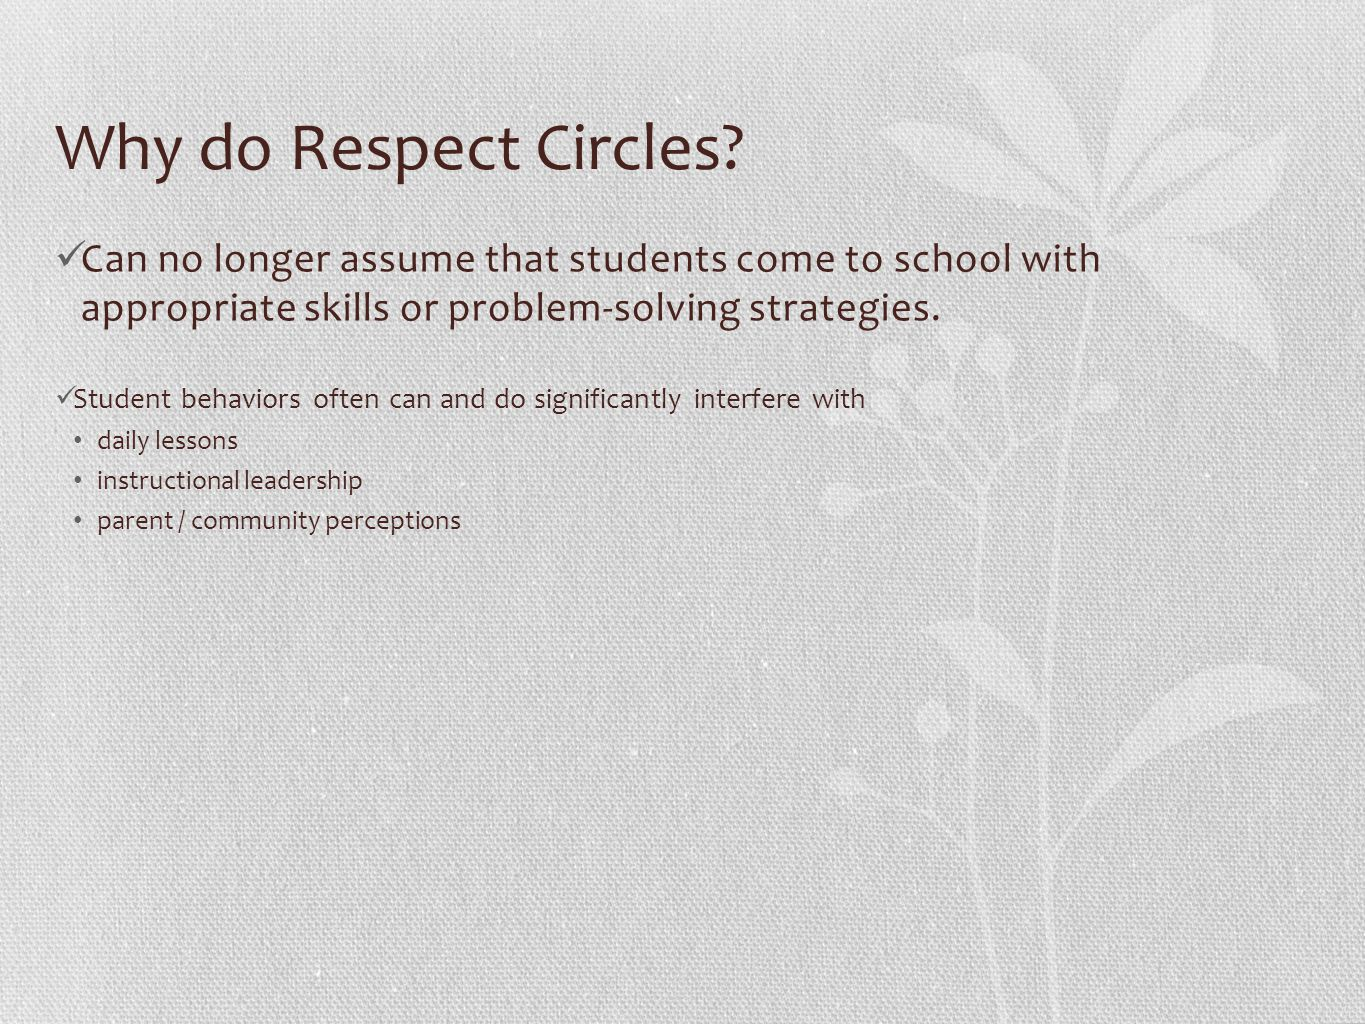 Why do Respect Circles? Can no longer assume that students come to school with appropriate skills or problem-solving strategies. Student behaviors oft